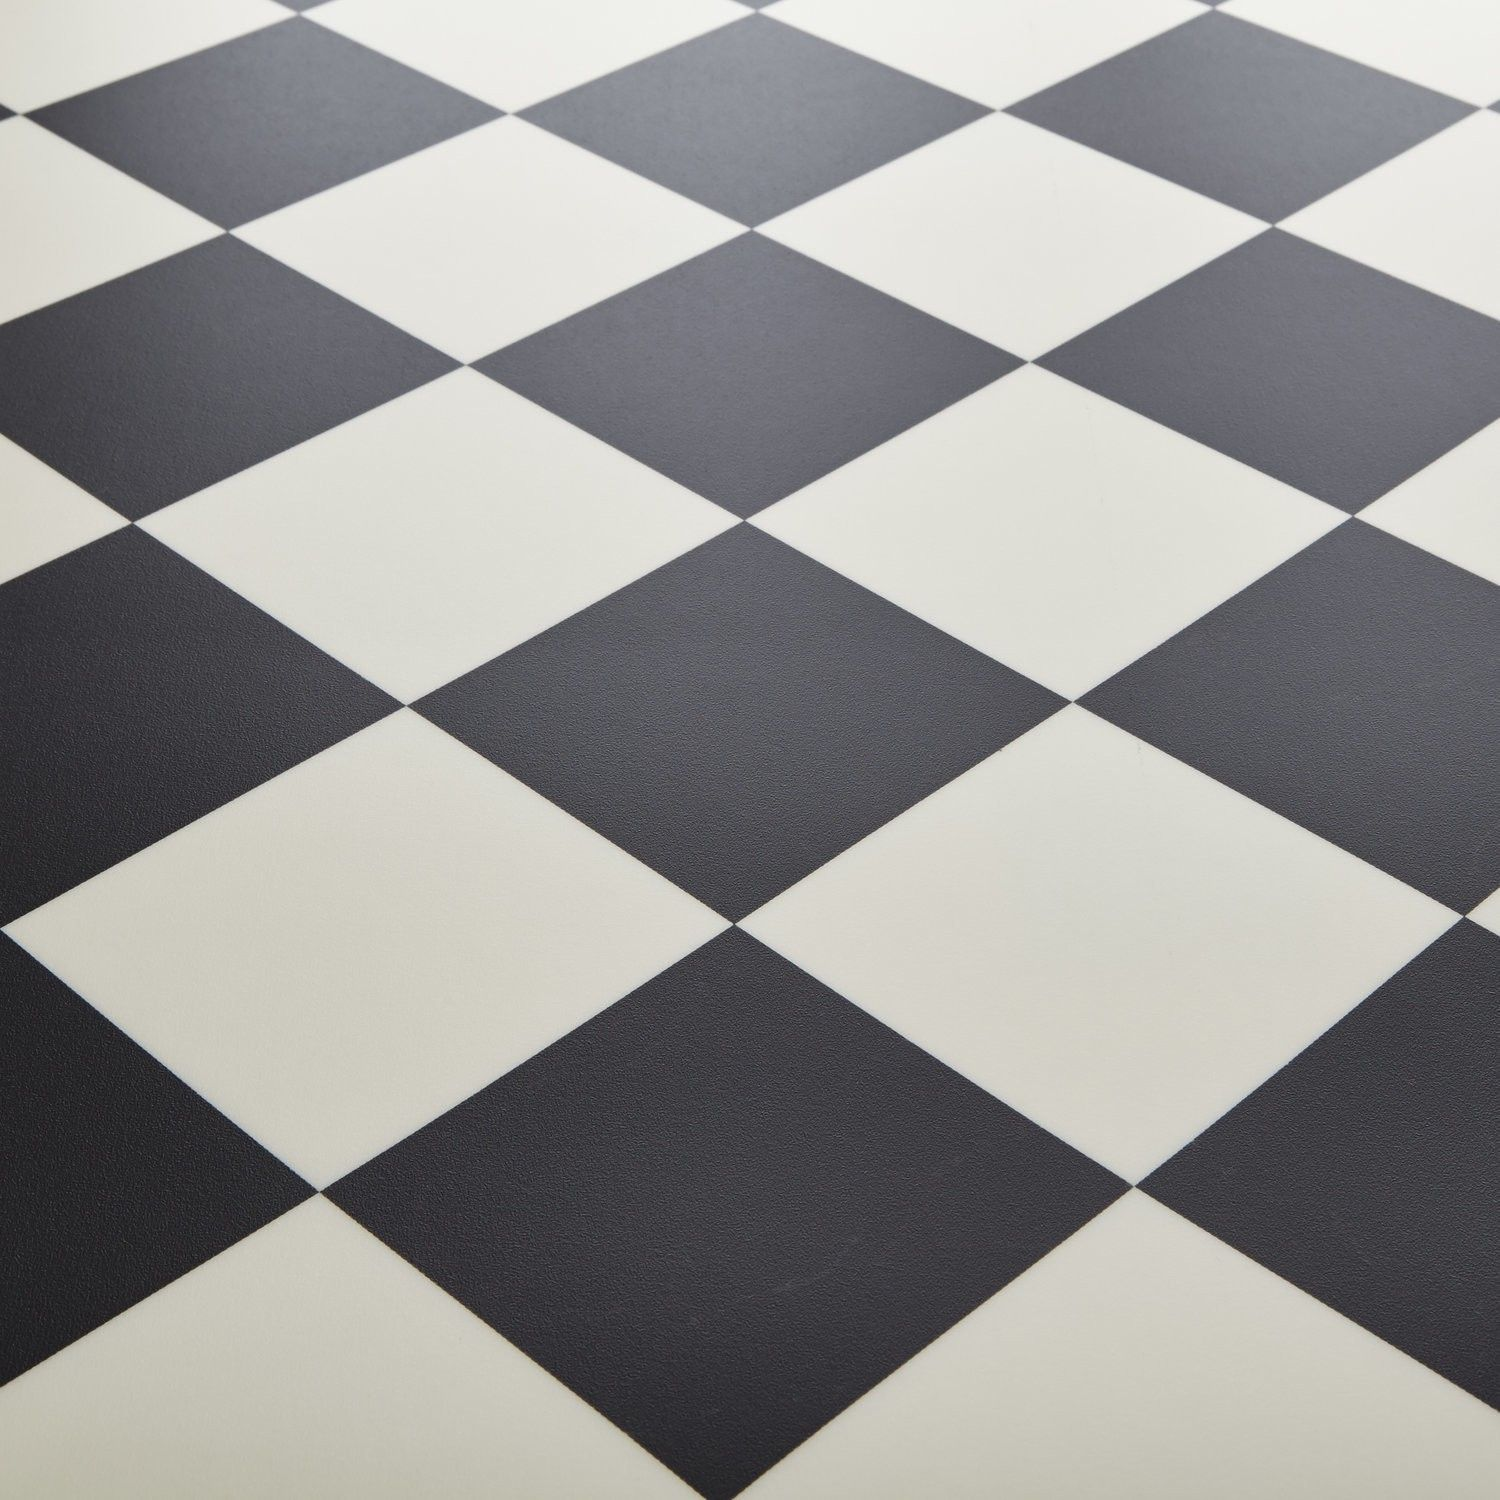 Rhino Champion Pisa BlackWhite Chequered Tile Vinyl Flooring The - Black and white square vinyl flooring